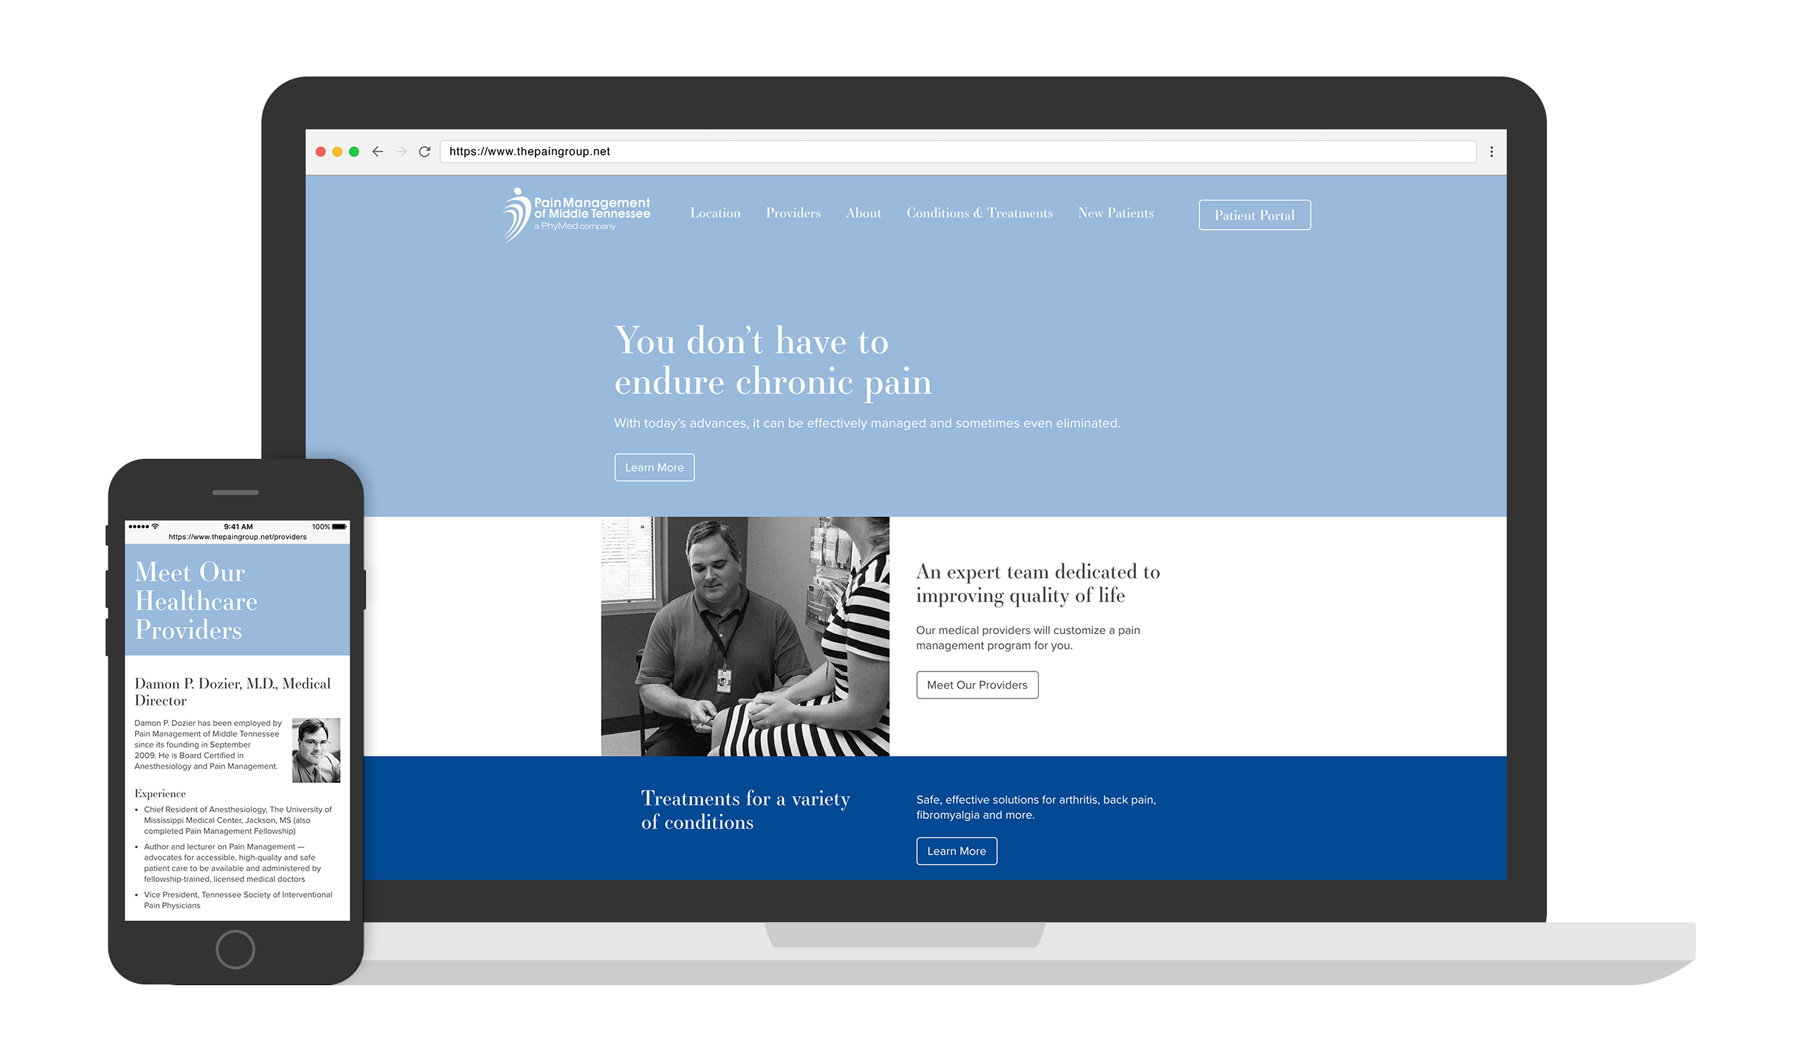 PhyMed - The Pain Group website displayed on multiple devices